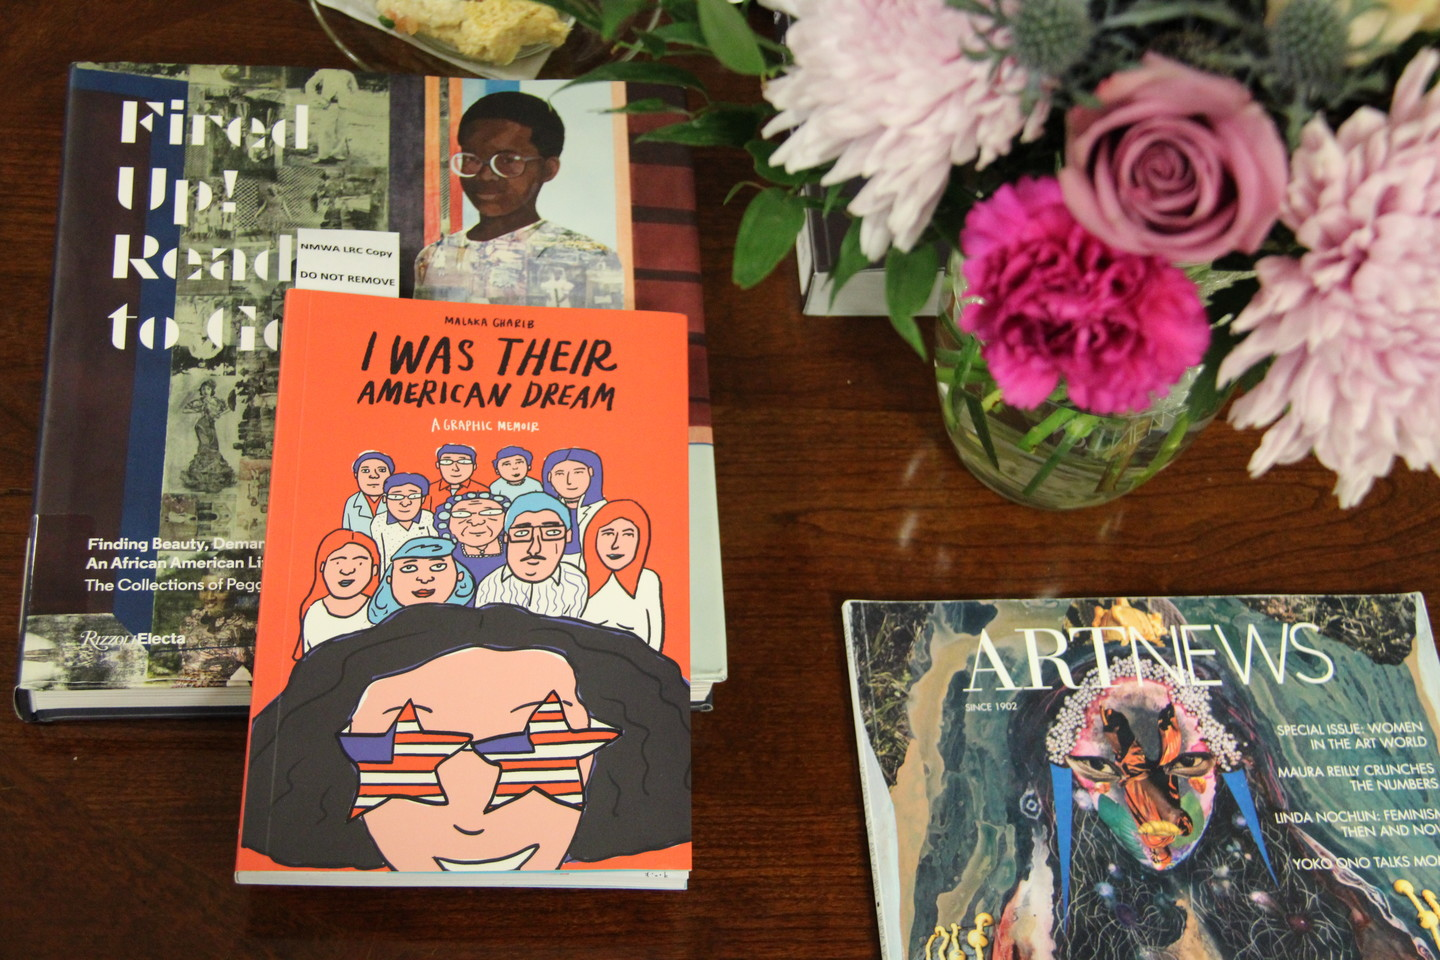 Two books, Fired Up! Ready to Go and I Was Their American Dream, rest on a tabletop, along with a small vase of pink and lavender flowers.